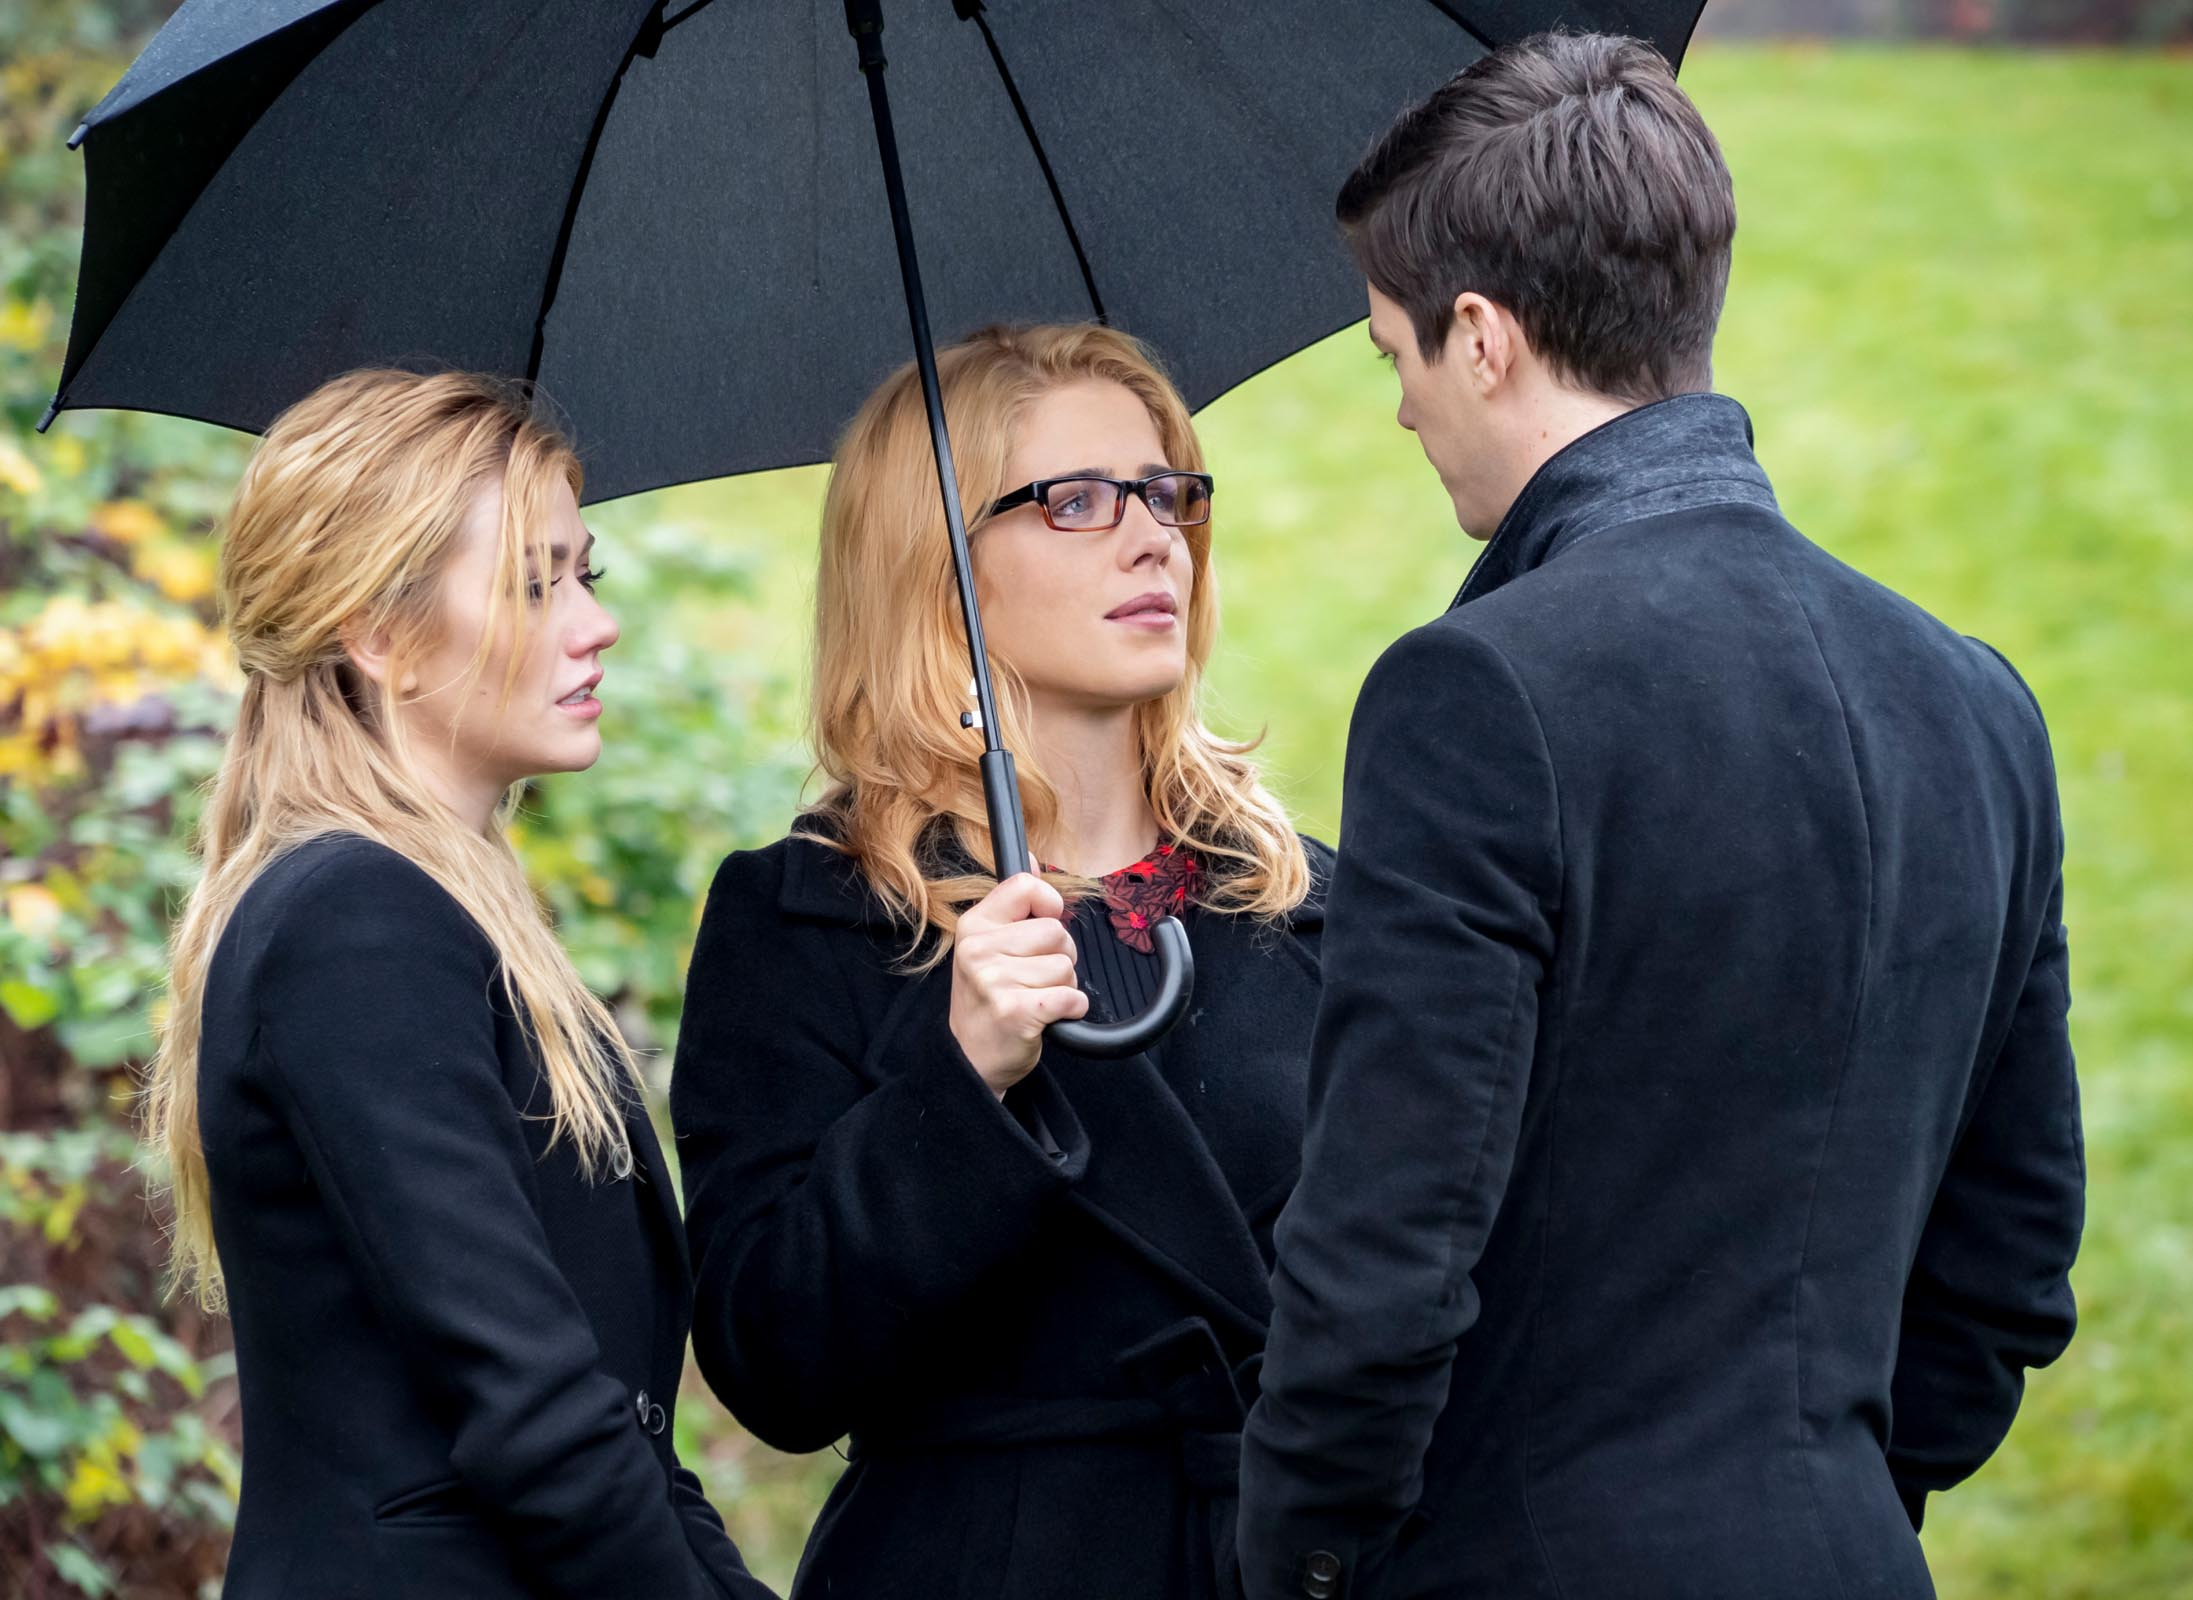 Arrow series finale photos reveal Felicity's return and major post-Crisis changes 19